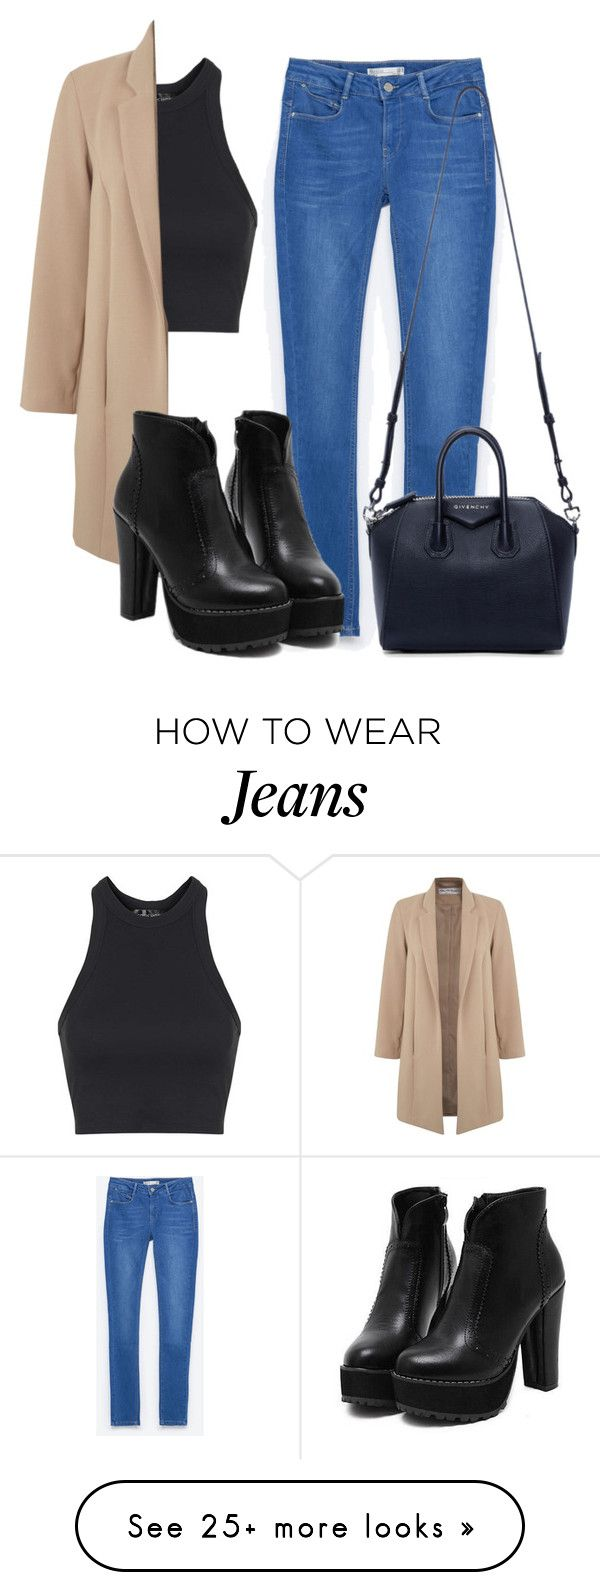 """""""Adventure of a lifetime"""" by forever-young89 on Polyvore featuring Zara, Topshop, Miss Selfridge, Givenchy, women's clothing, women, female, woman, misses and juniors"""